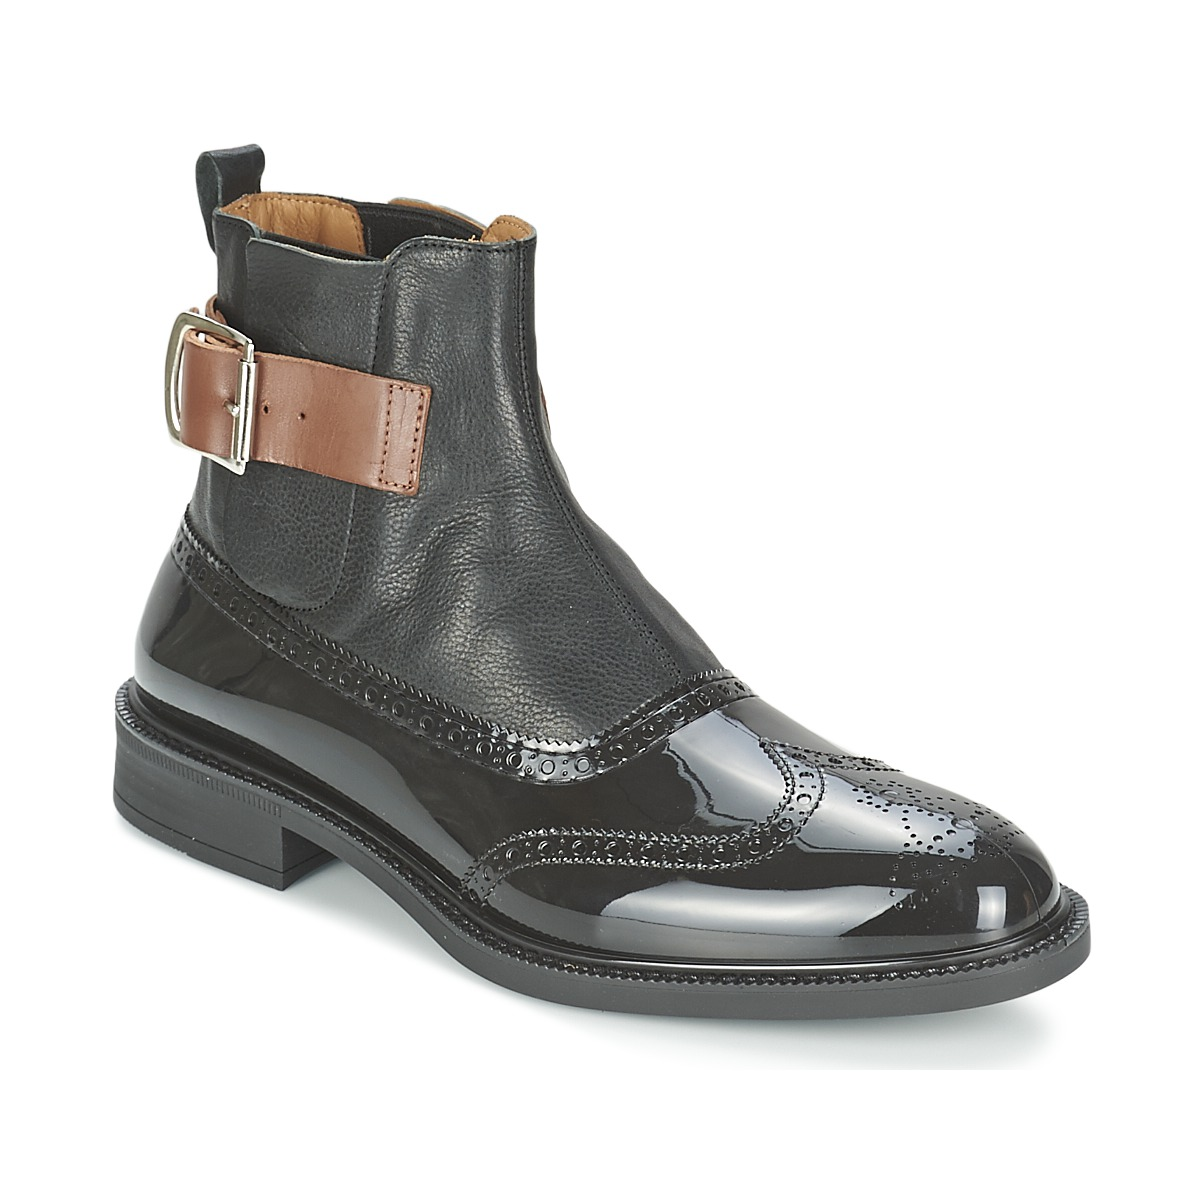 Vivienne Westwood BROGUE BOOT Black